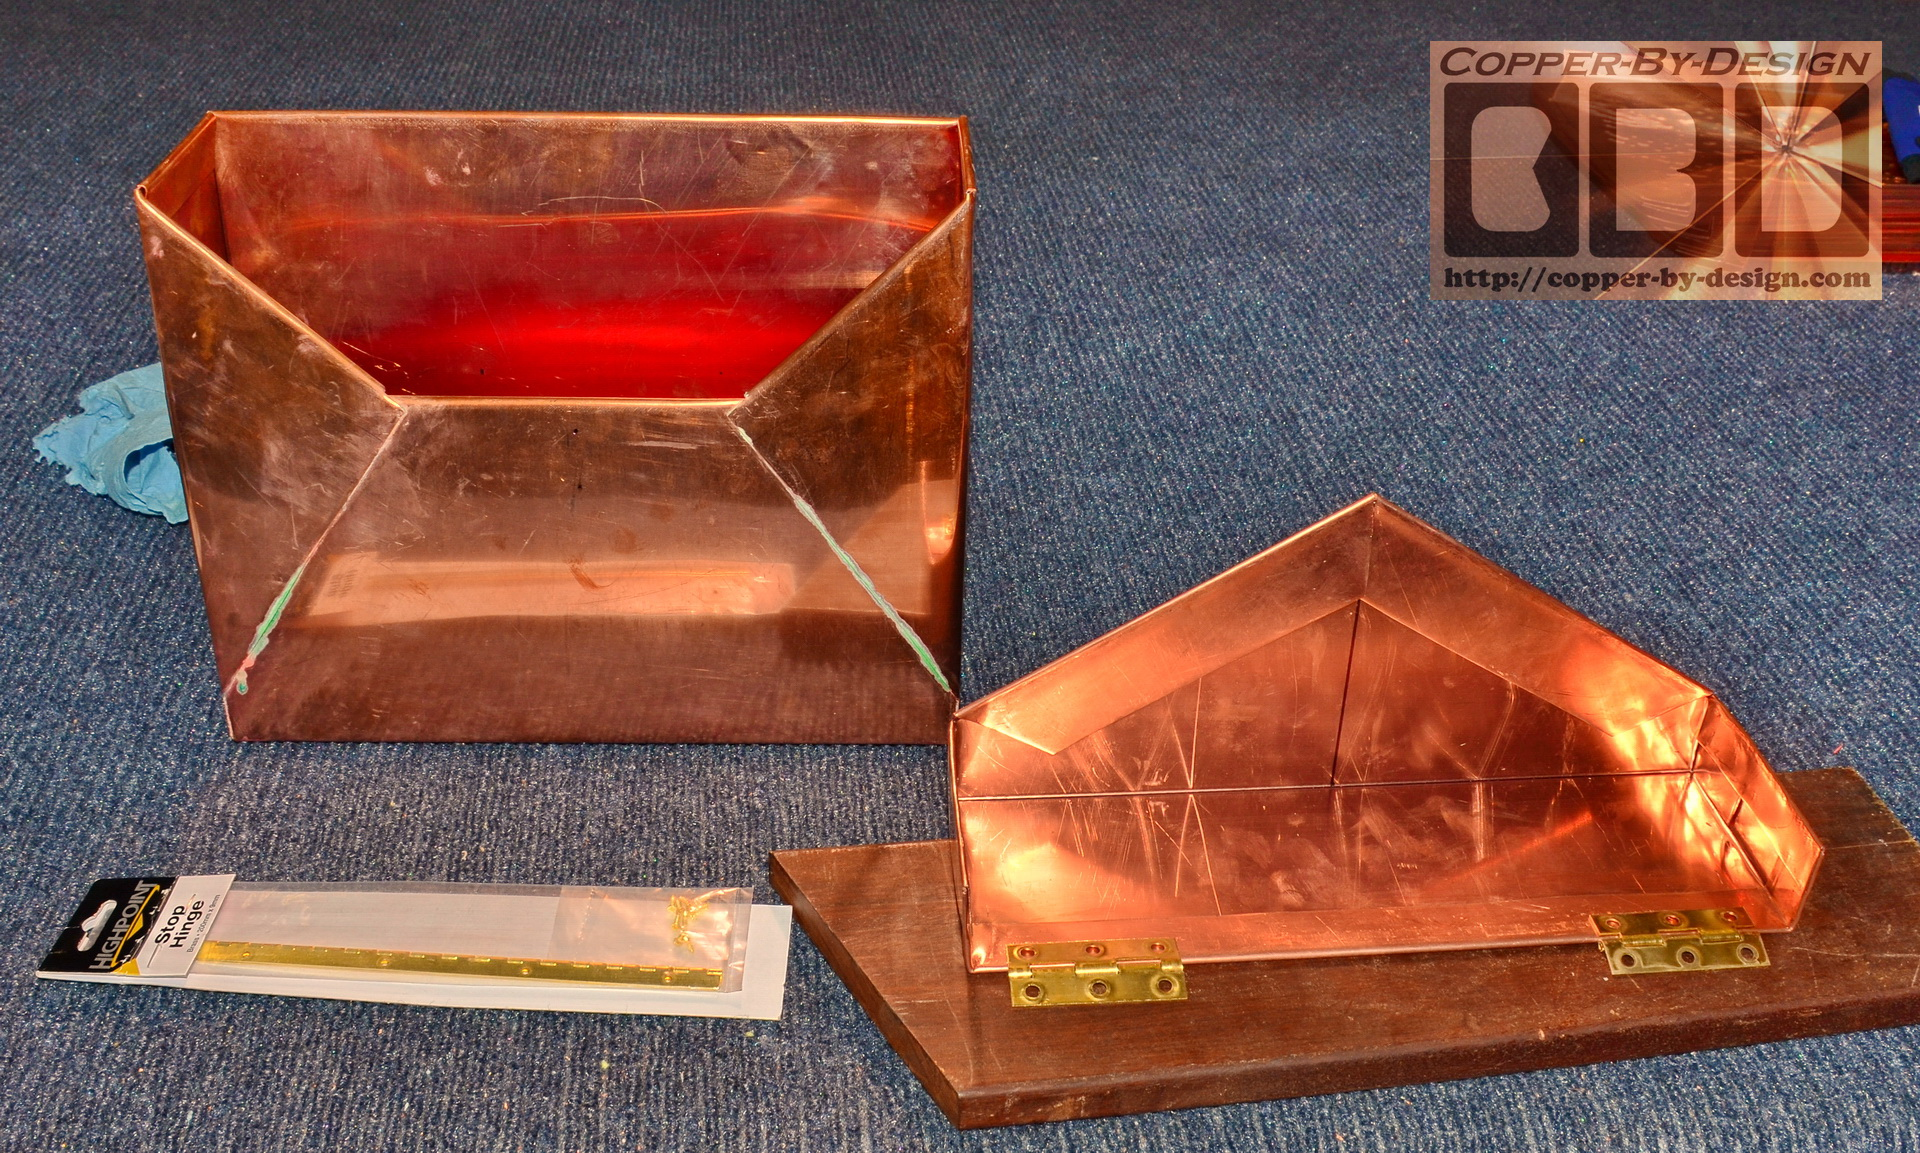 CBDs Custom Copper Mail Boxes Page